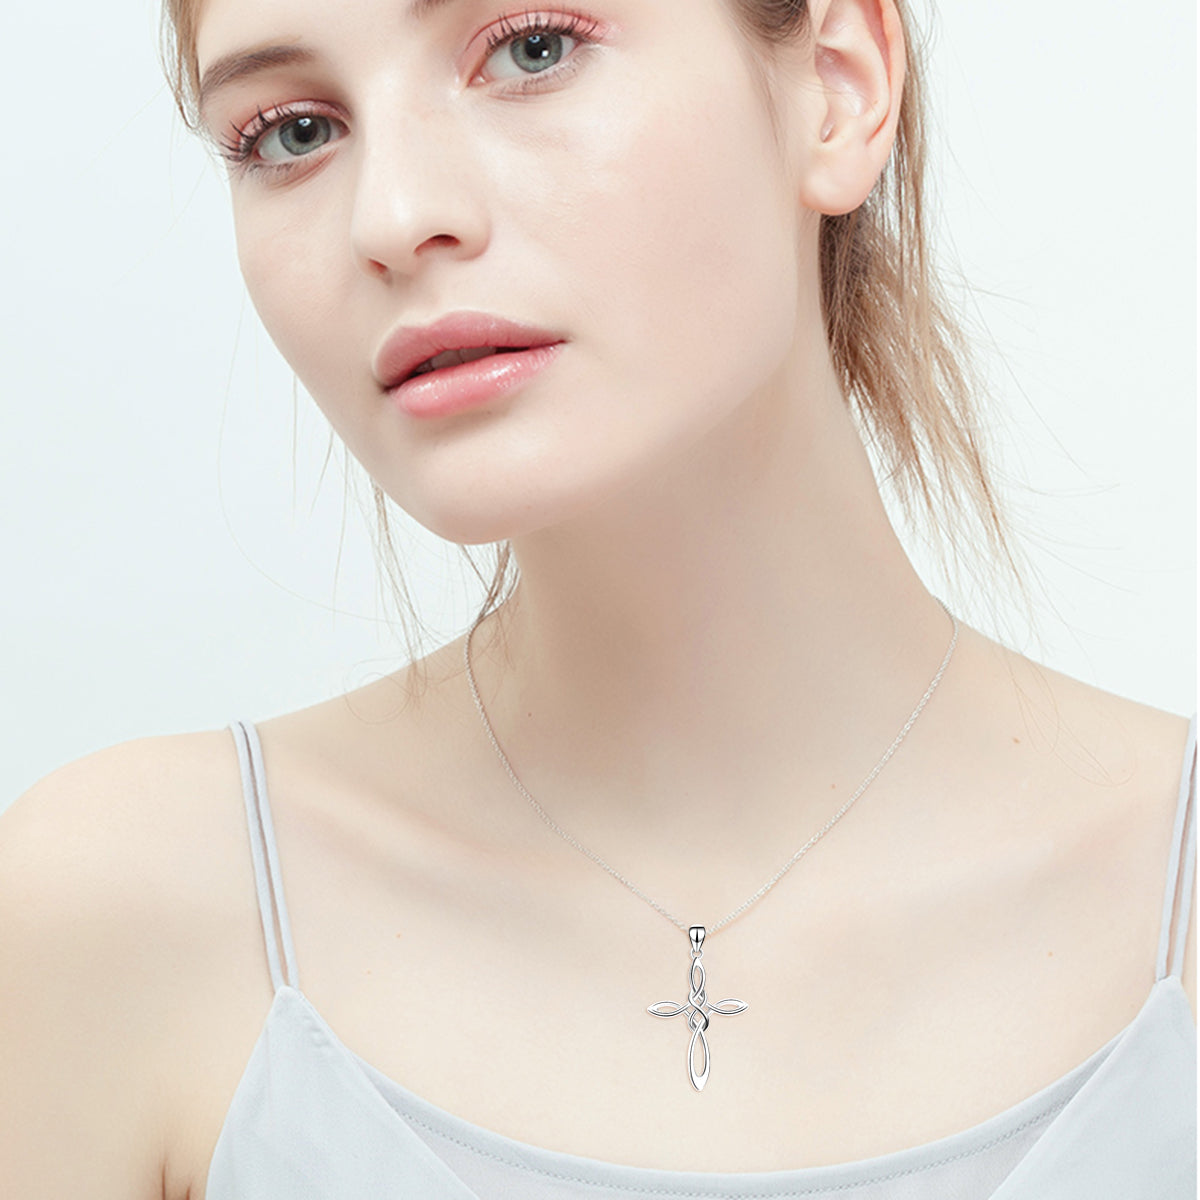 Rhodium Plating and Chains Cross Necklace Wedding Jewelry